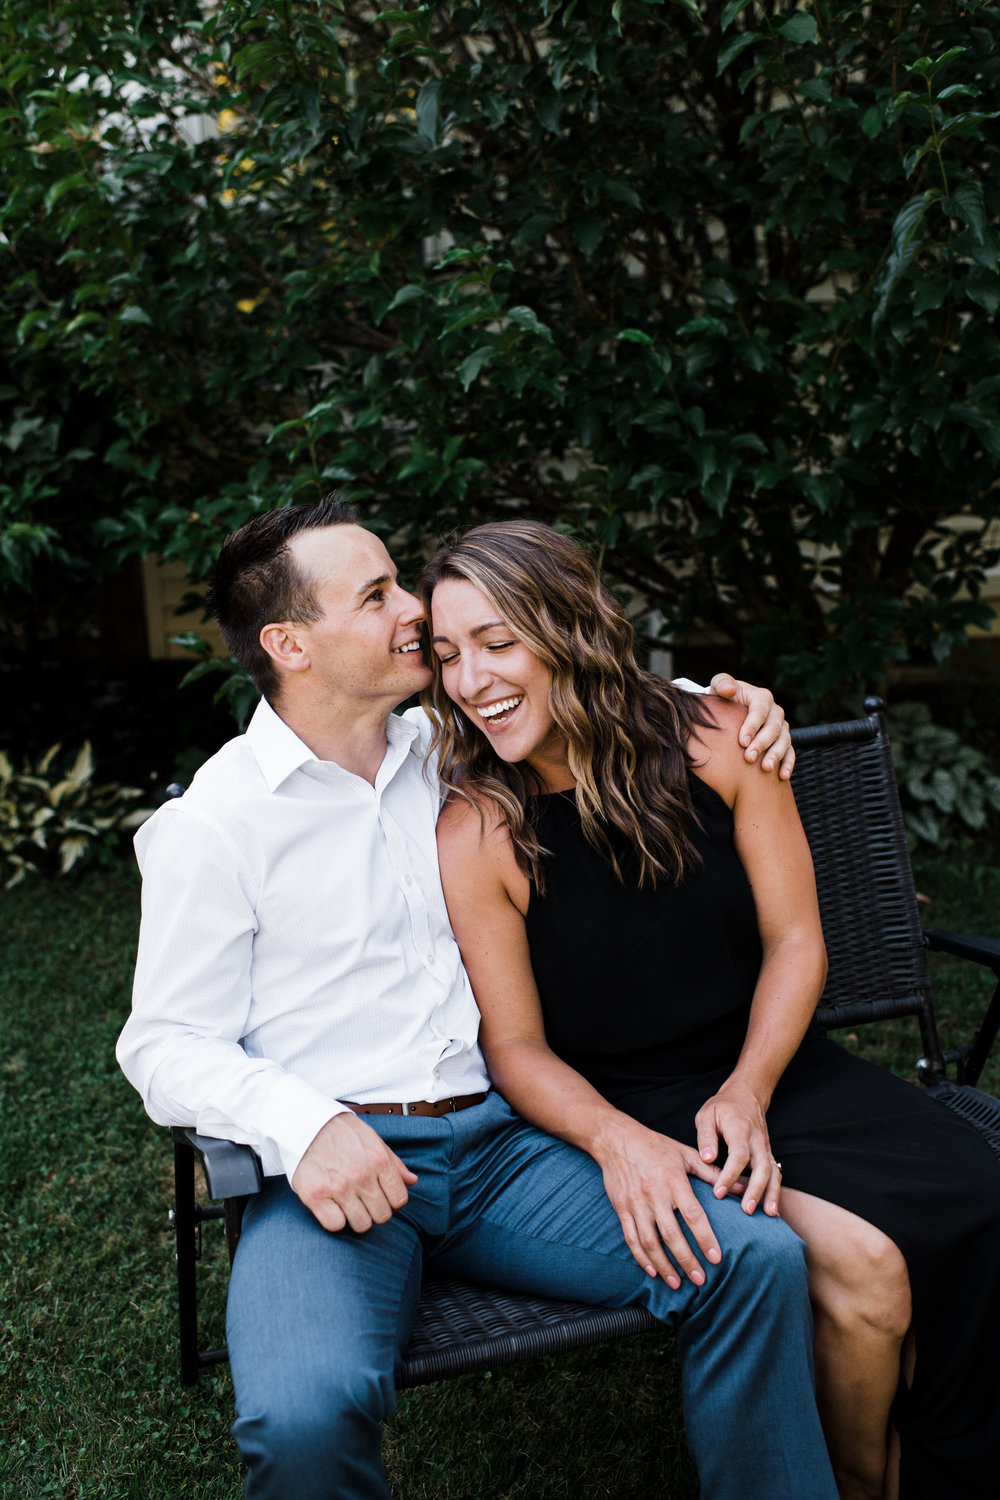 Engaged couple sitting on a bench in their backyard laughing.